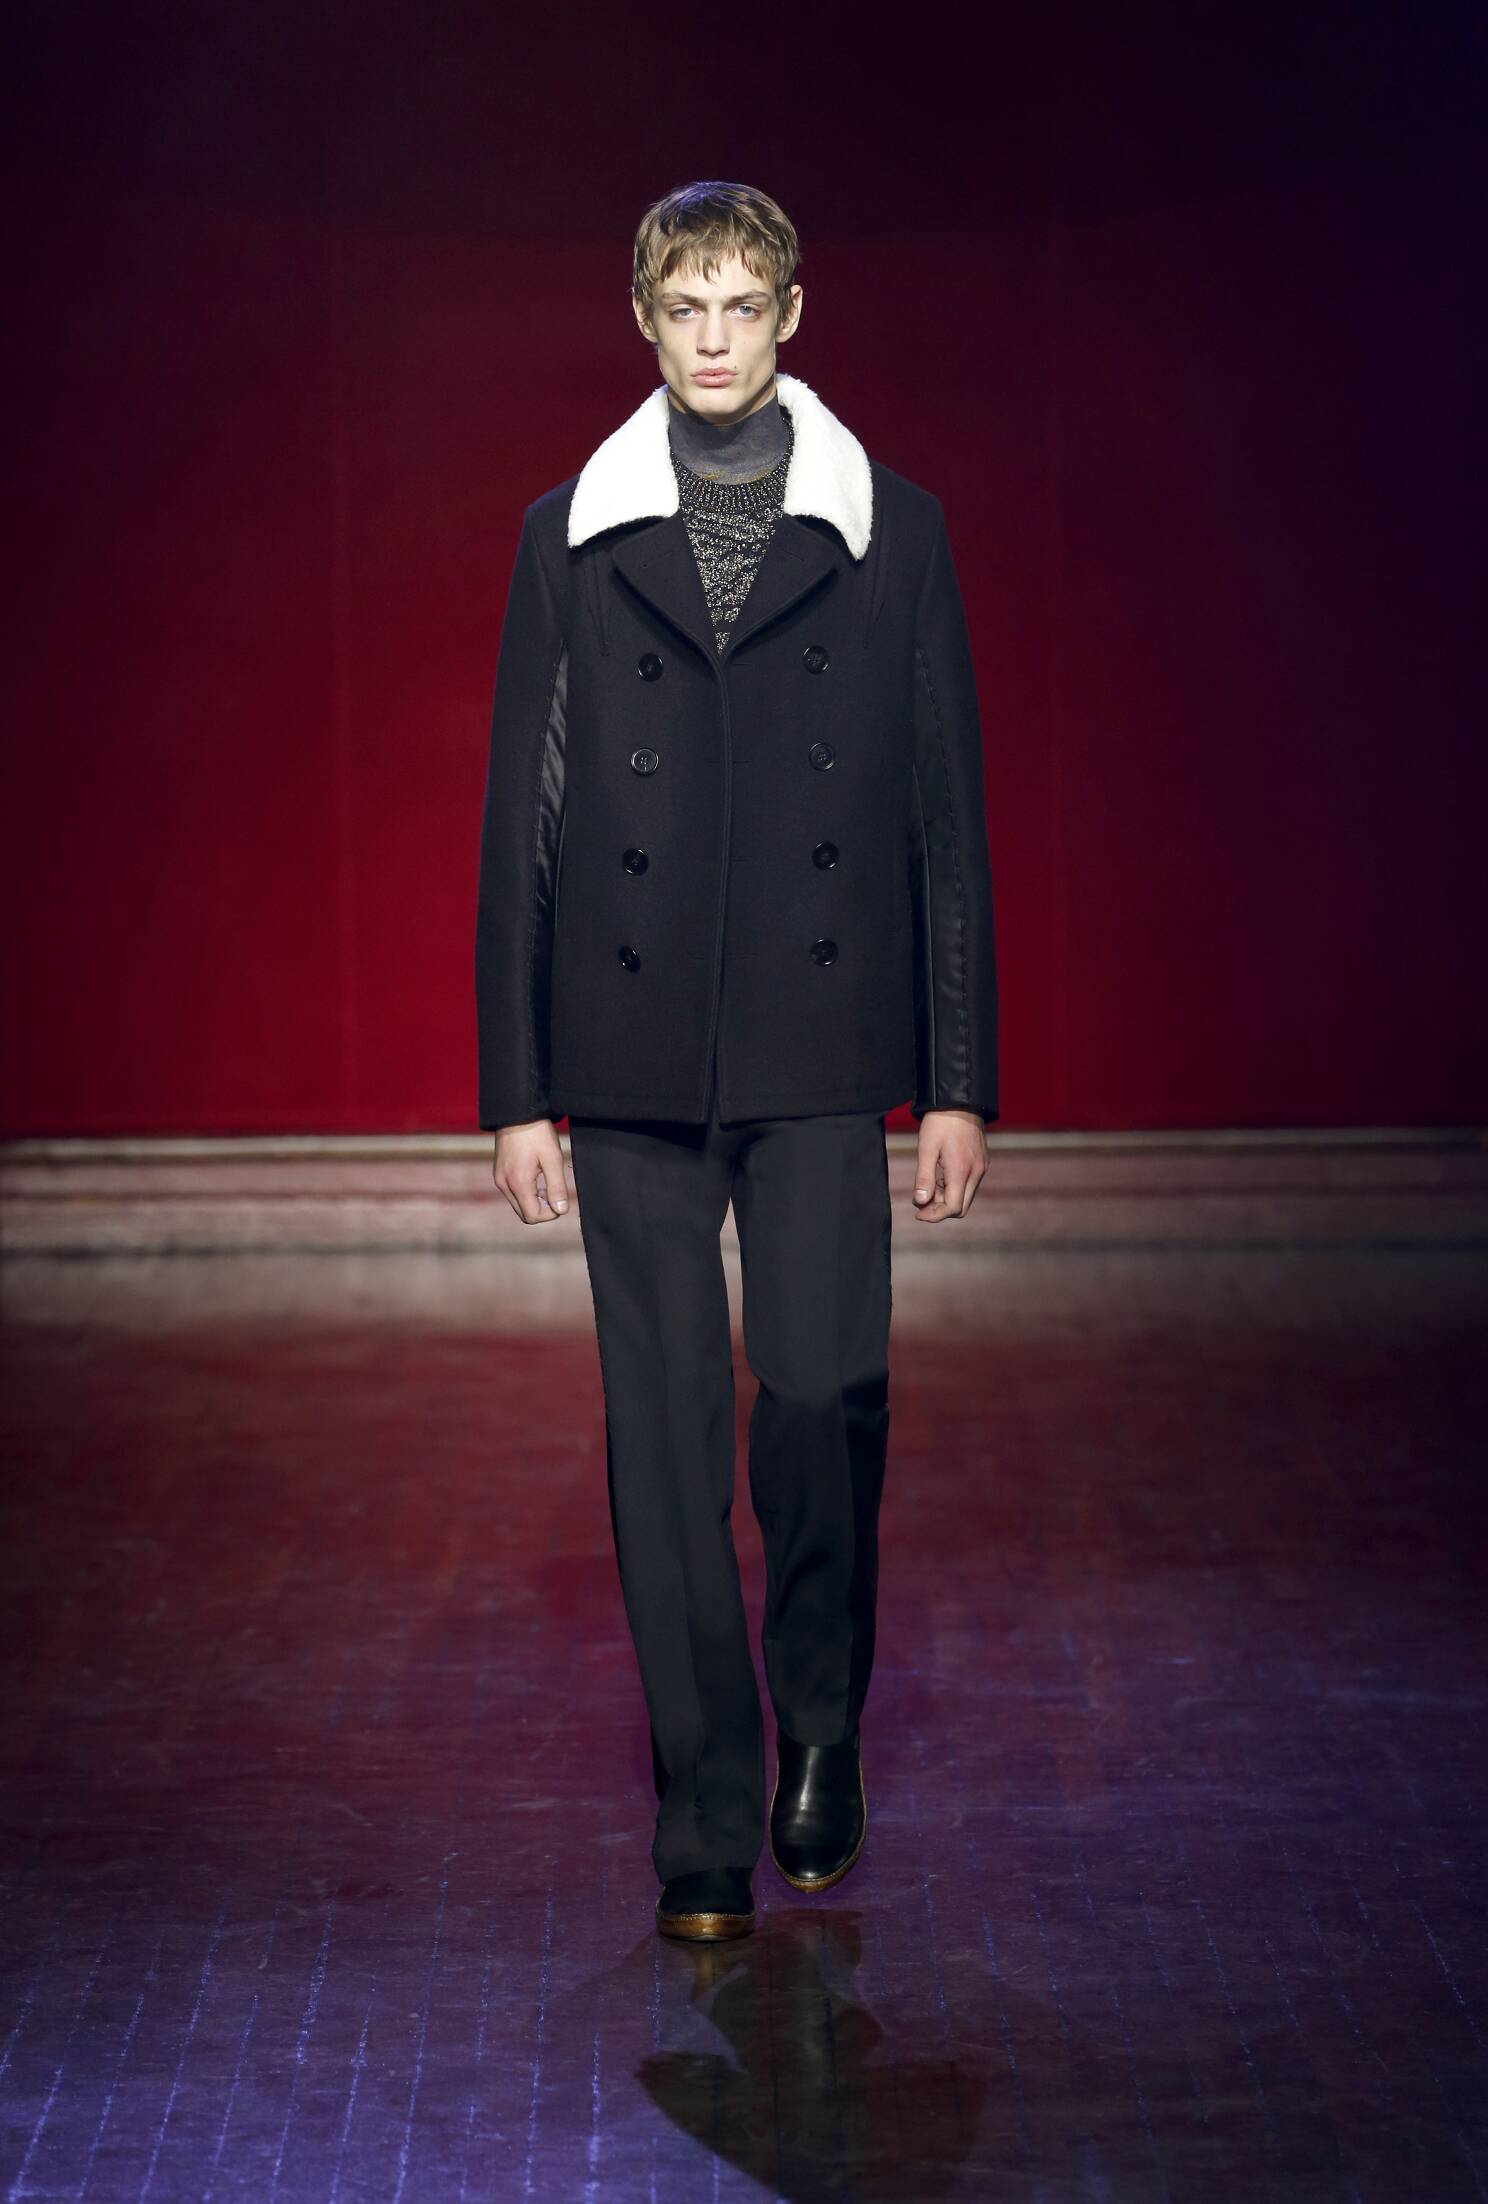 Winter 2015 Man Trends Maison Margiela Collection